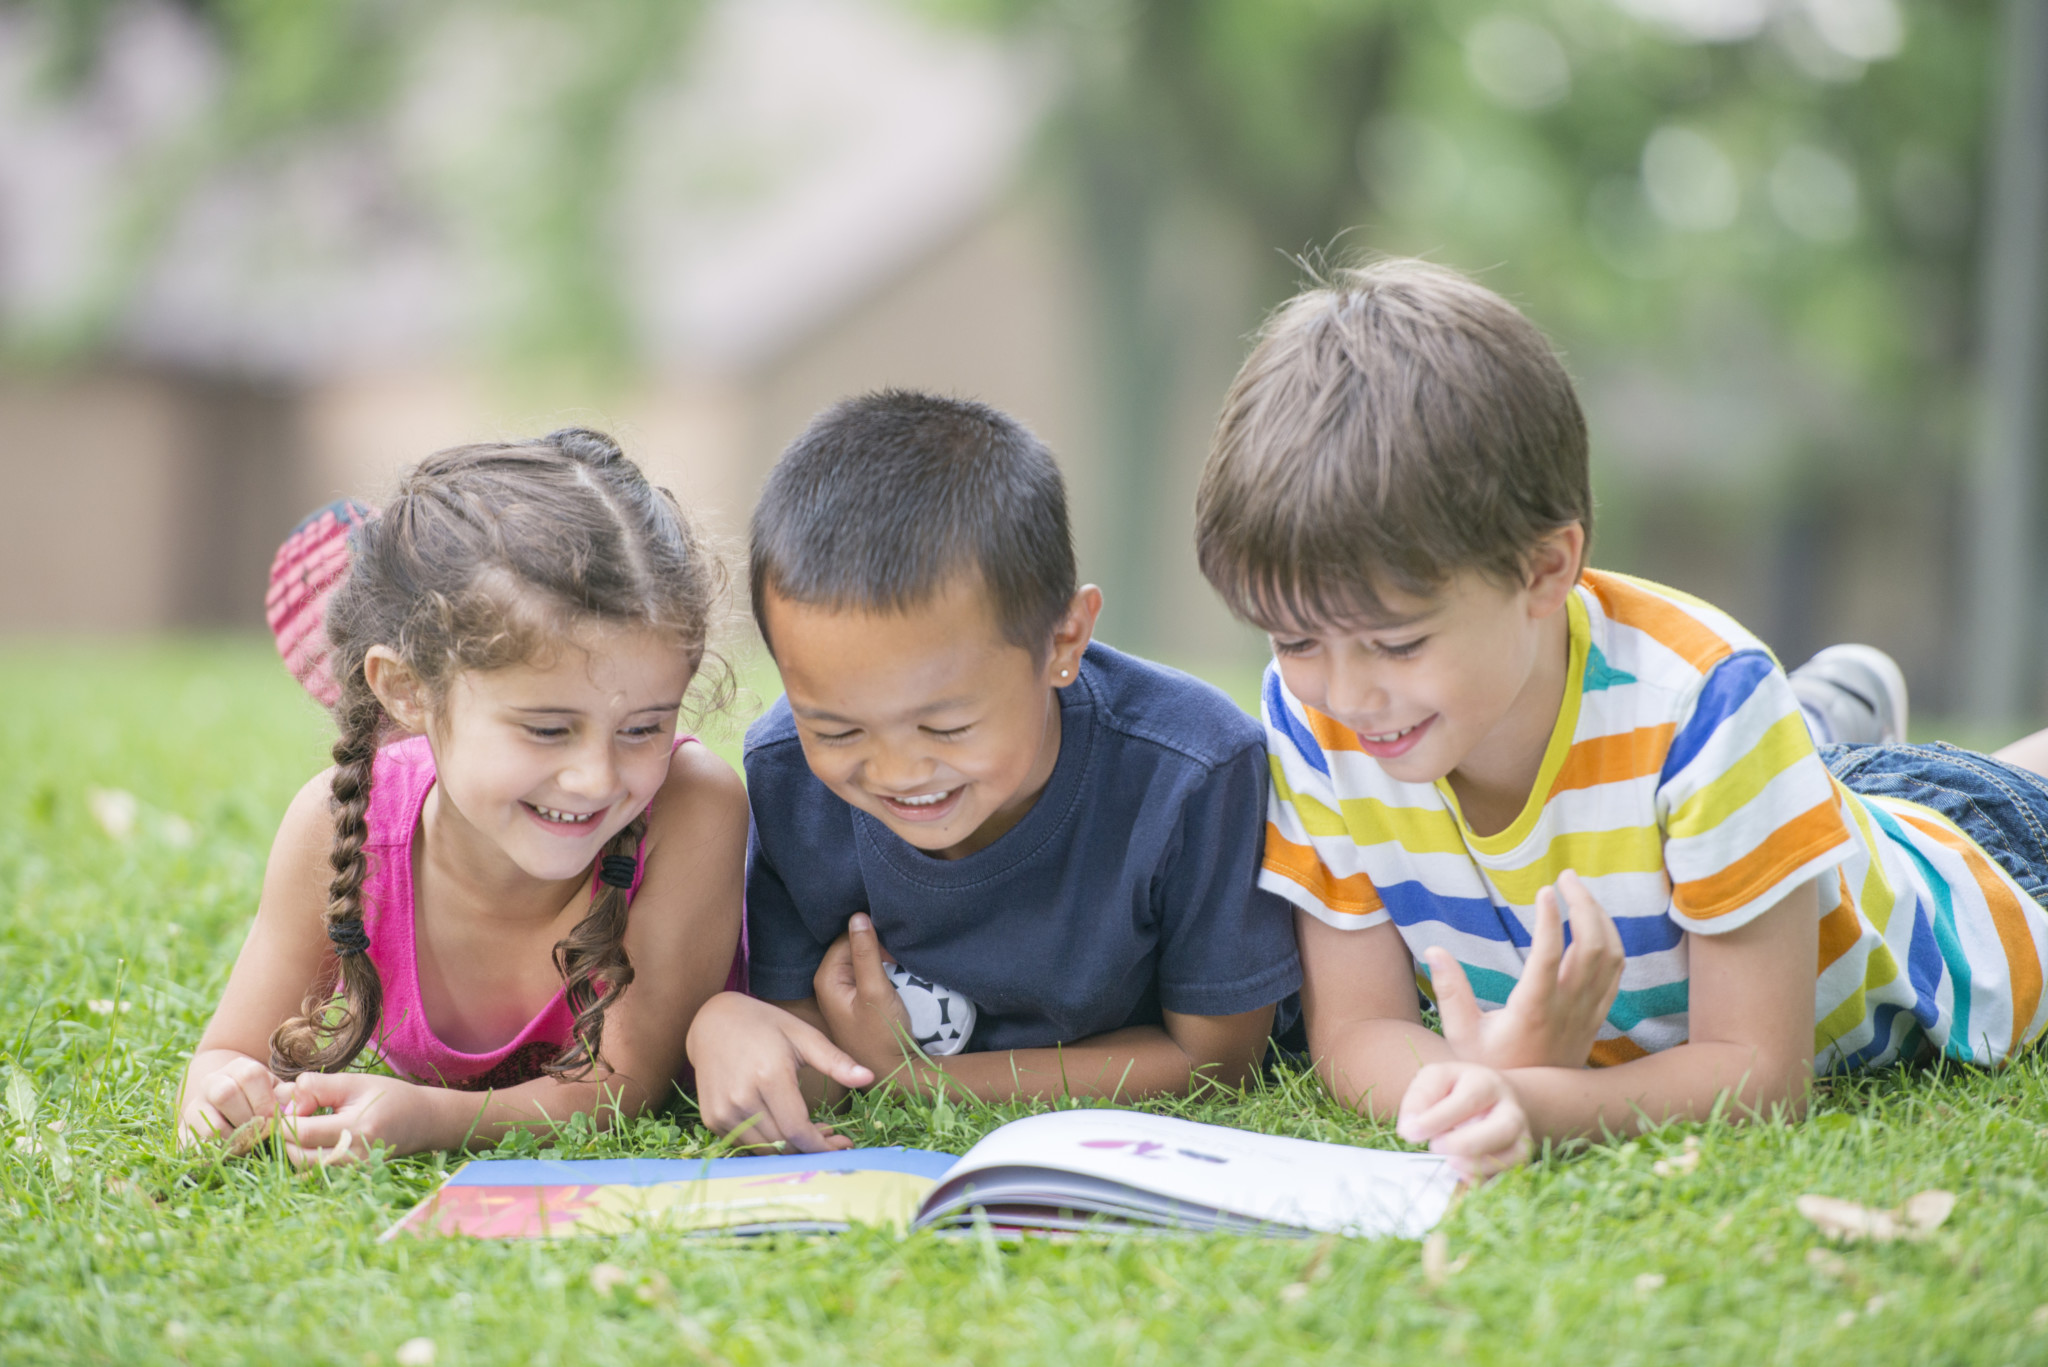 A multi-ethnic group of elementary age children are lying in the grass and are reading a book together in the grass.